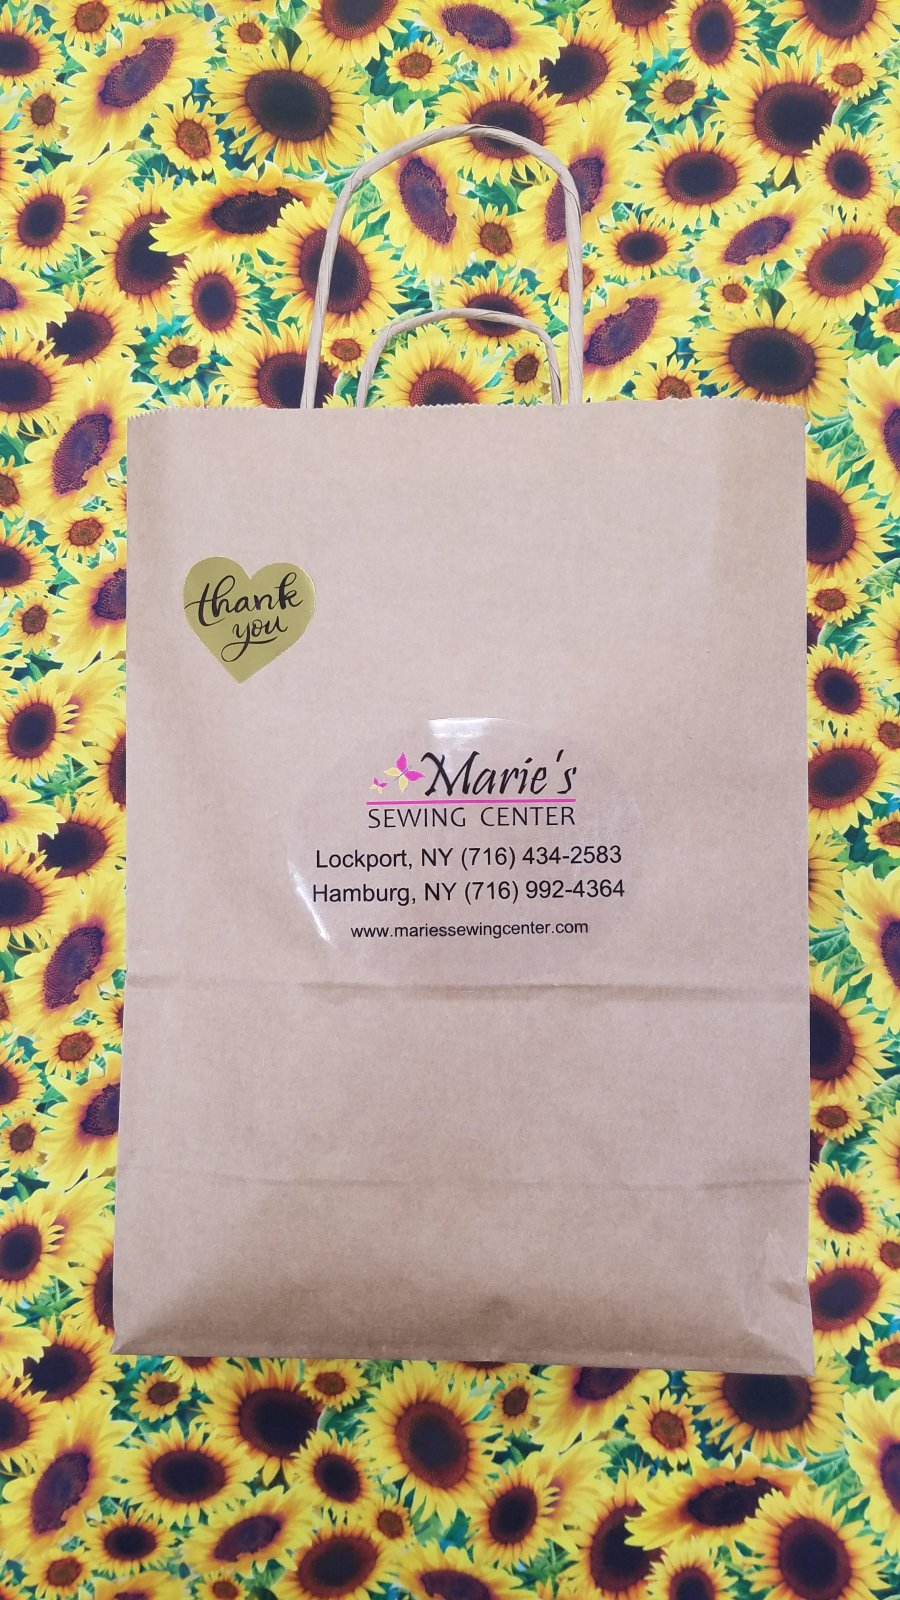 2021 BROWN BAG MYSTERY QUILT KIT - SUNFLOWERS